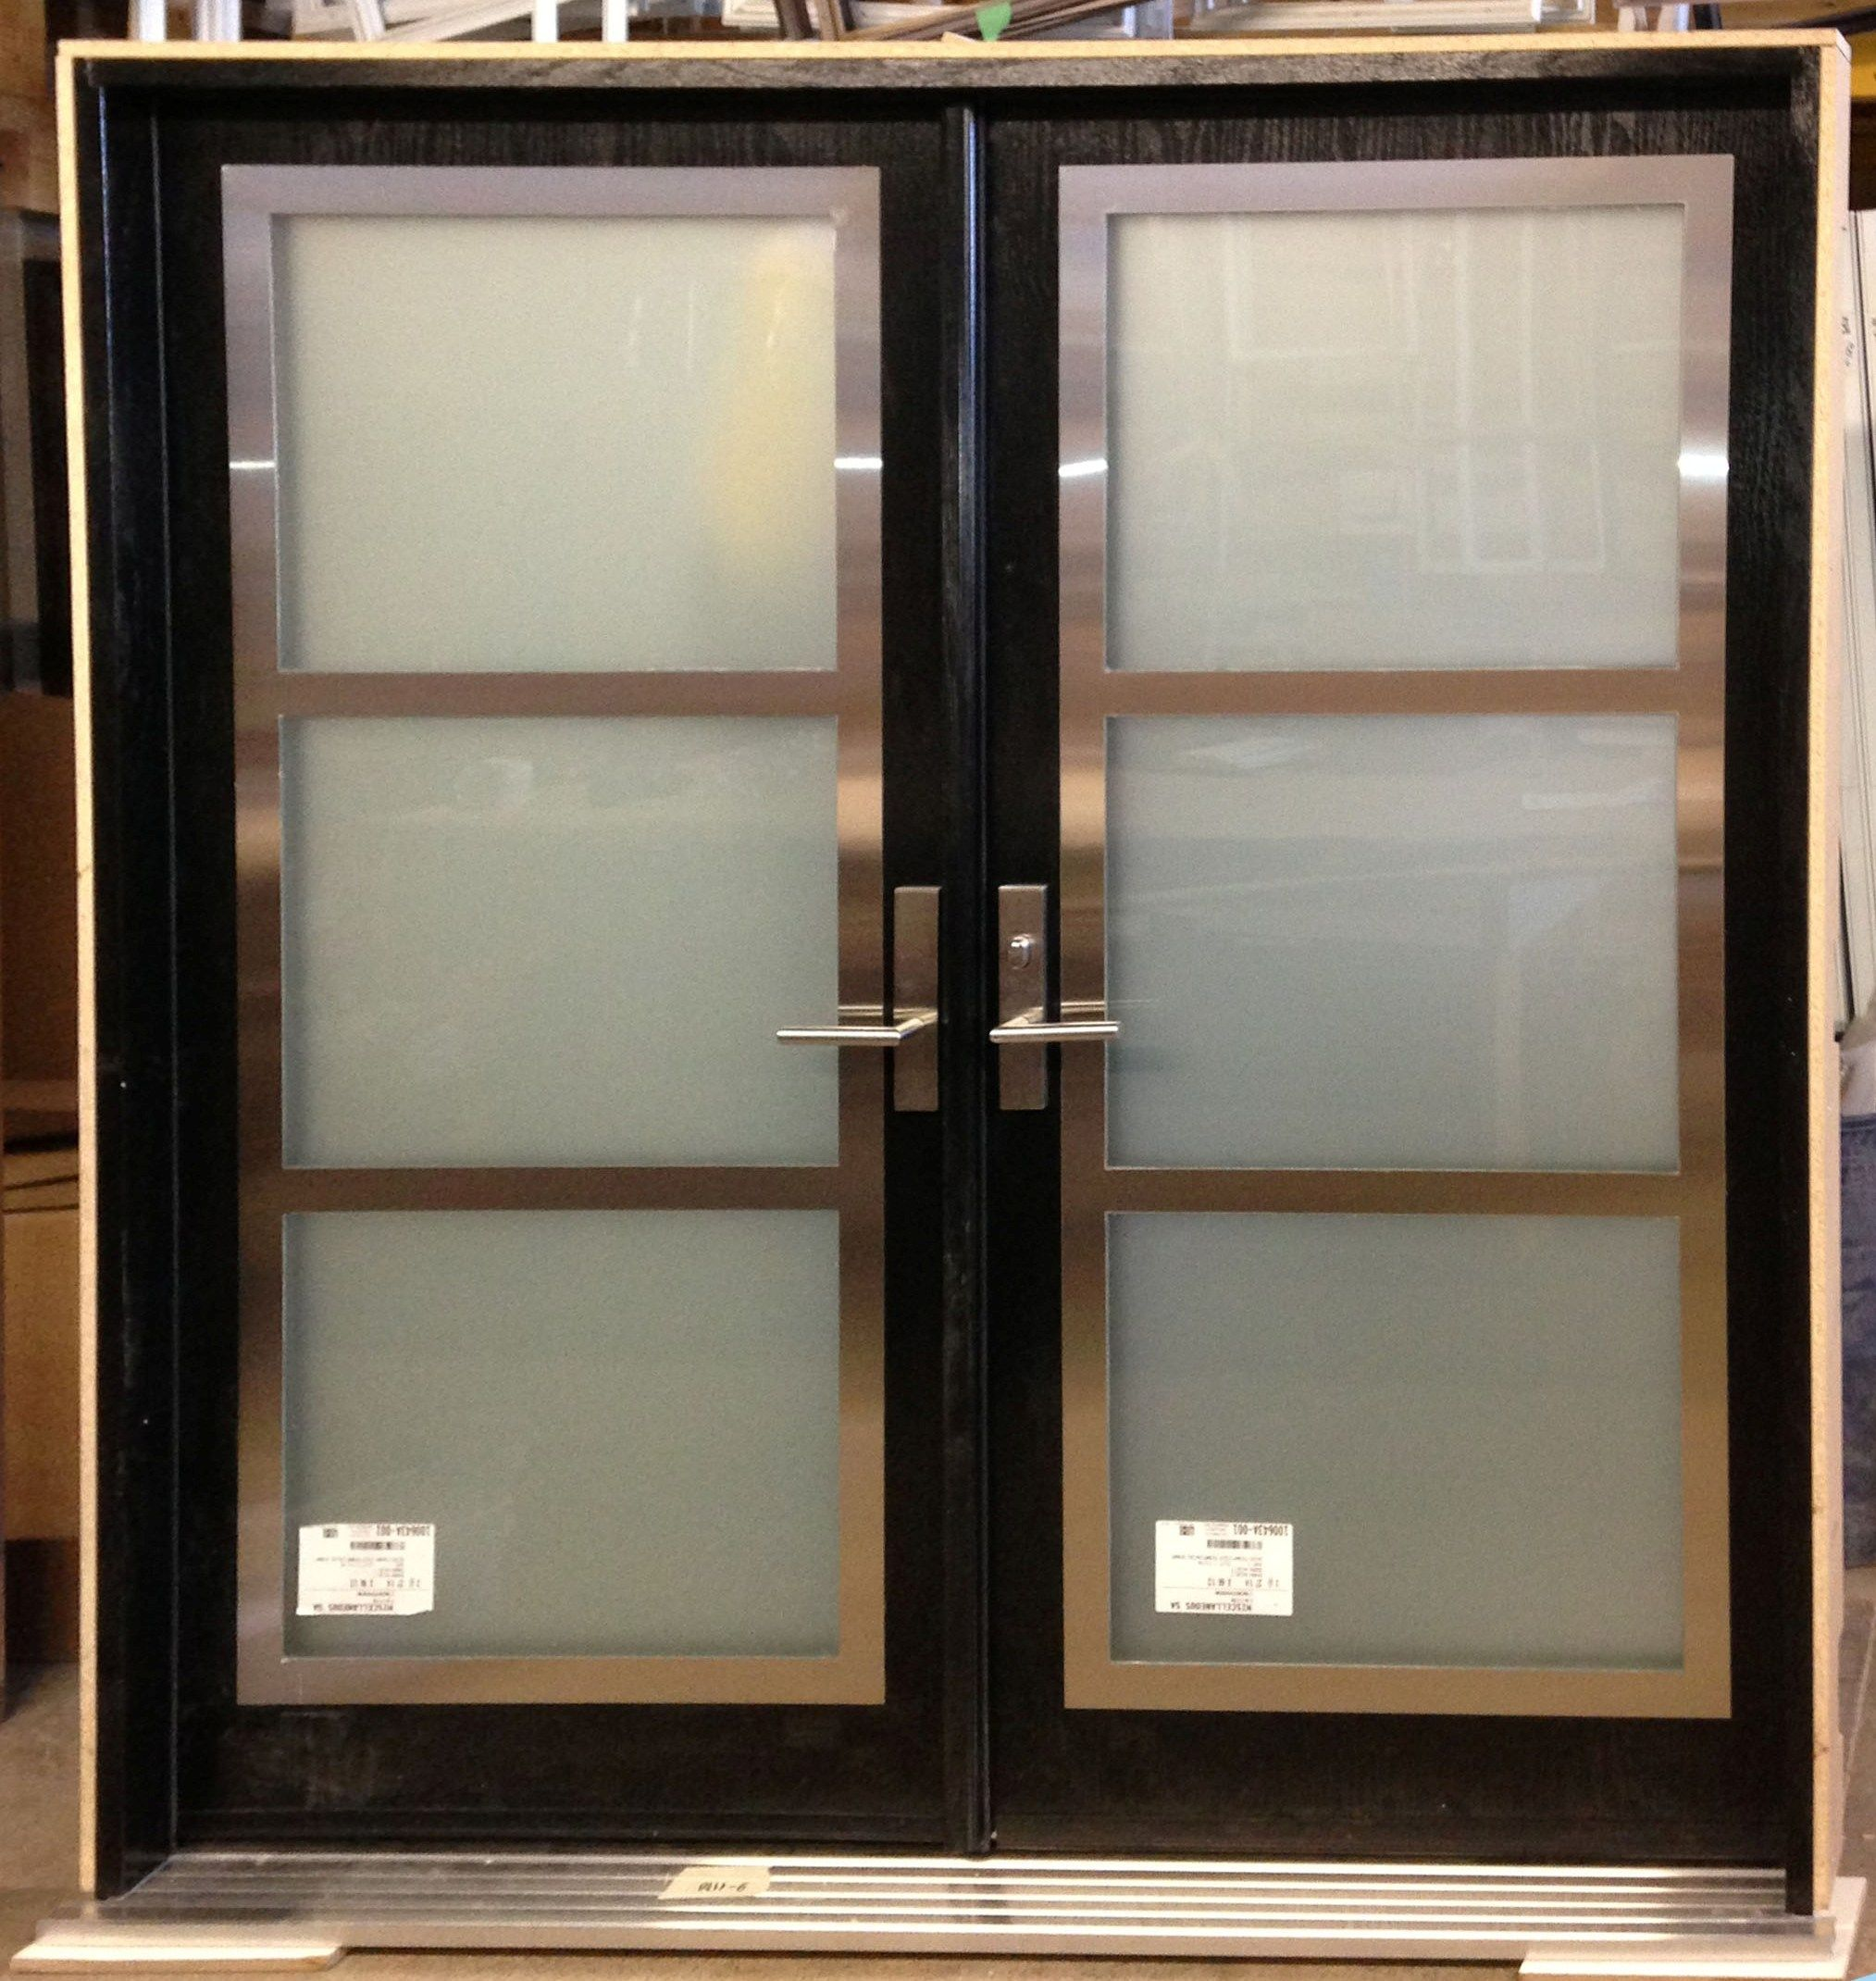 Double entry door with stainless steel frame on top of for Office glass door entrance designs